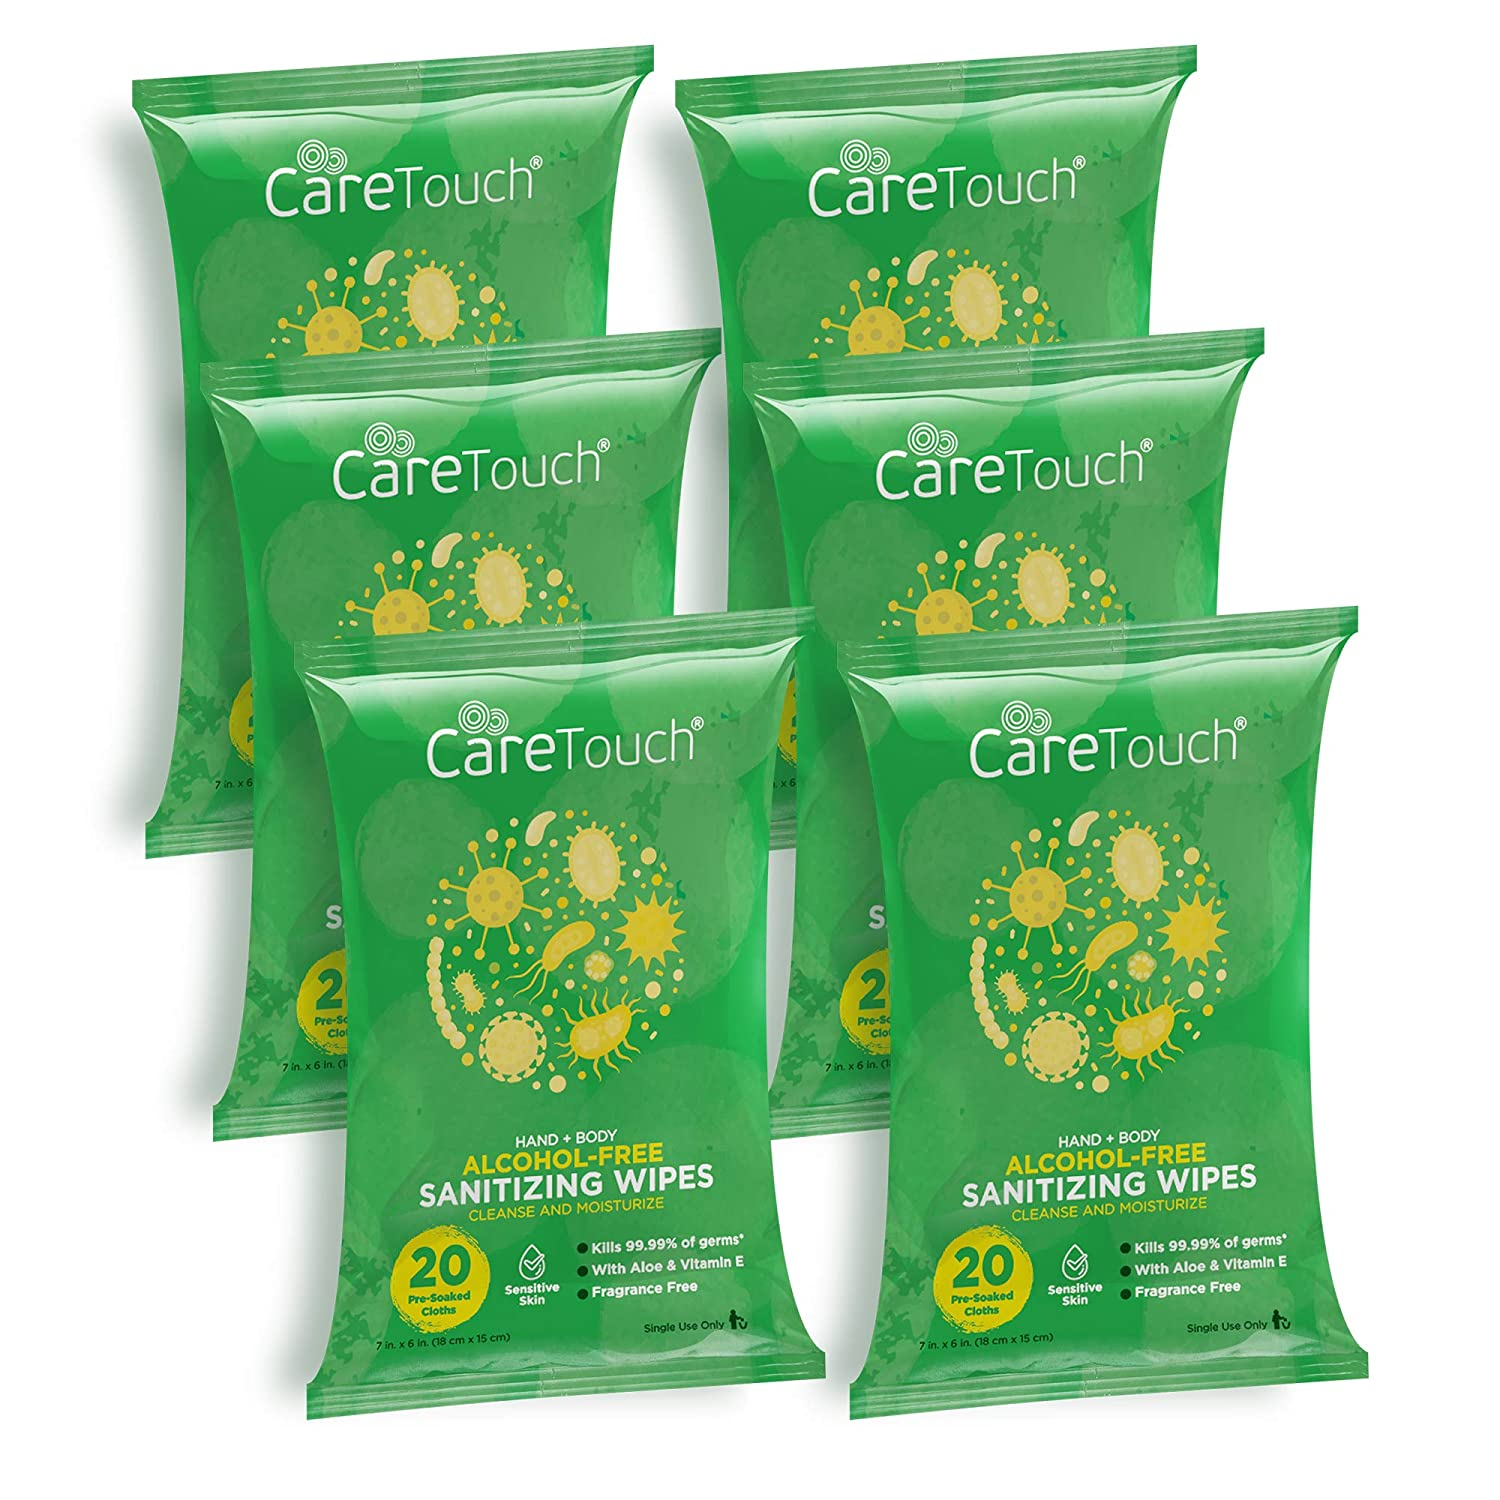 Care Touch Alcohol-Free Hand Sanitizing Wipes | 6 Pouches of 20 Wipes (120 Total) | Antibacterial Hand Wipes with Vitamin E + Aloe Vera for Babies and Adults | Made in The USA